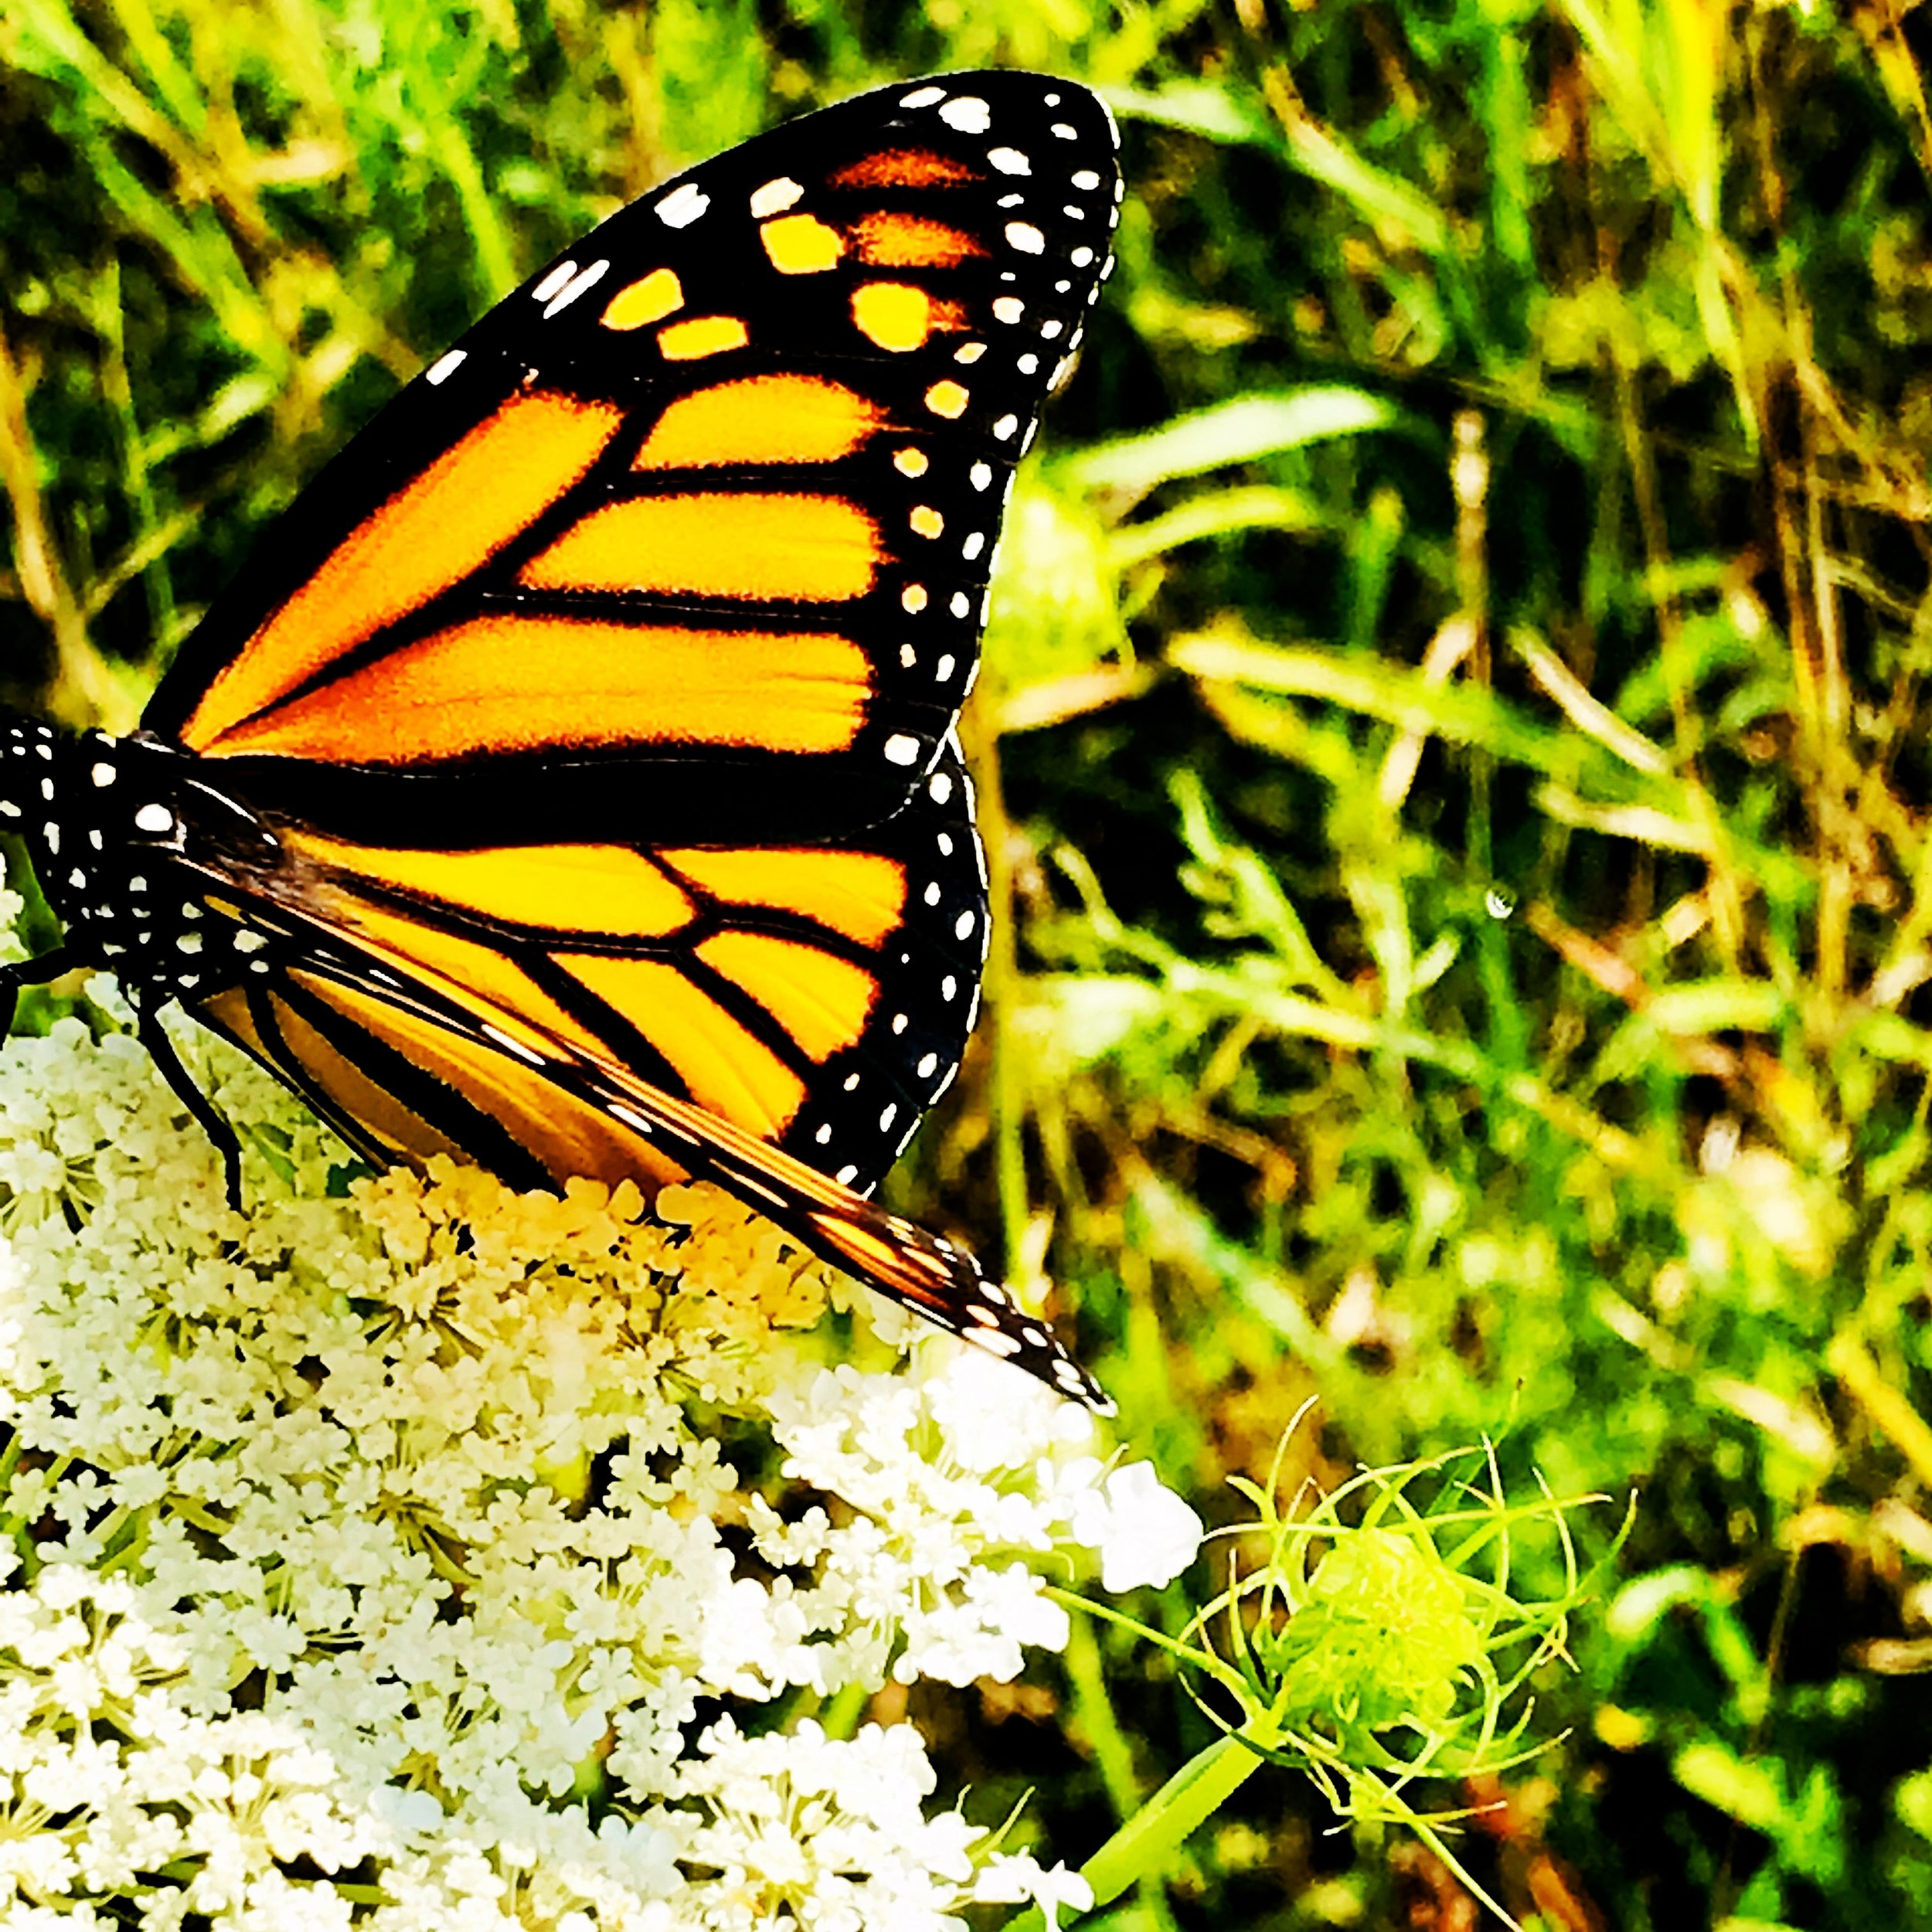 Monarch butterfly on Queen Anne's Lace in the morning meadow